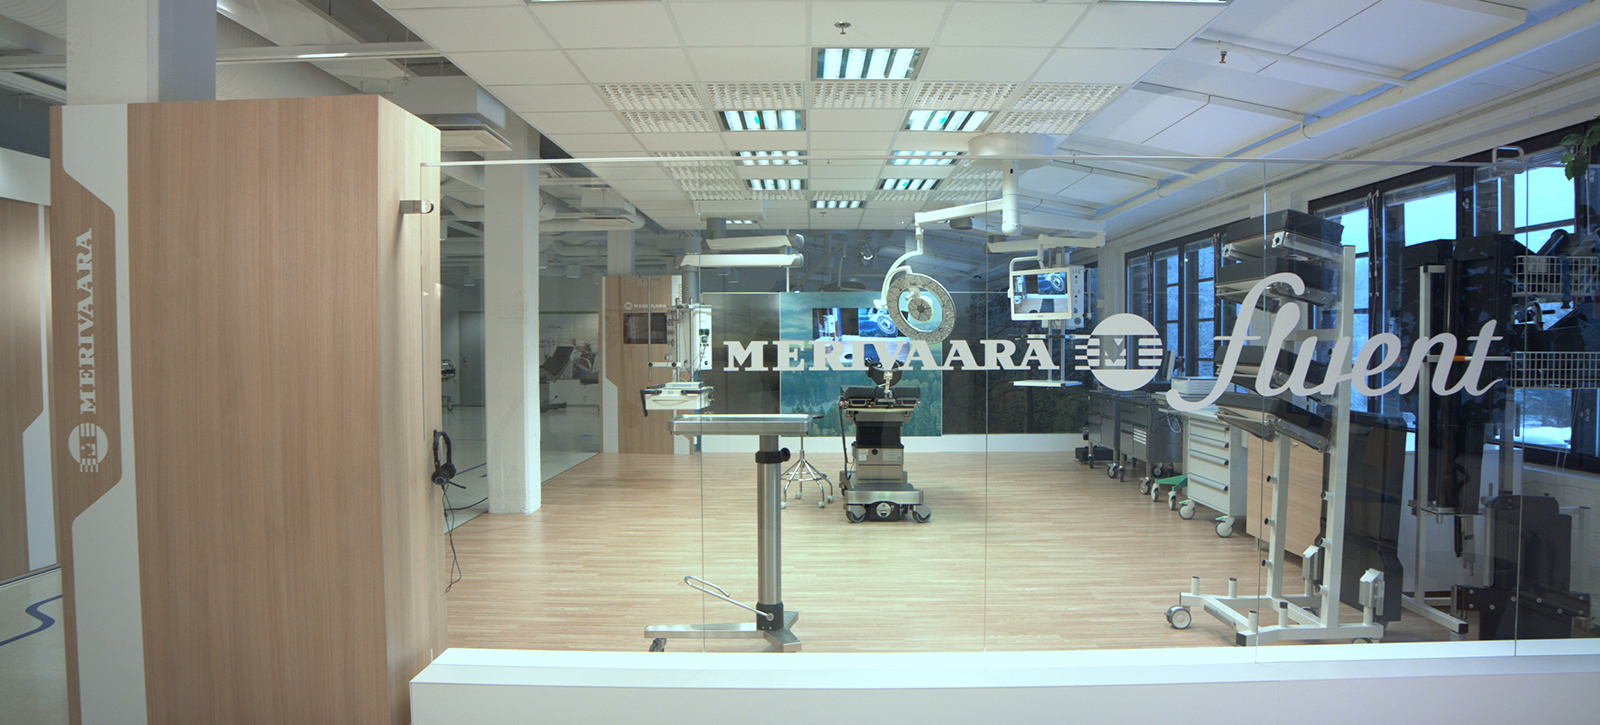 Messua interior design - Merivaara Showroom logo